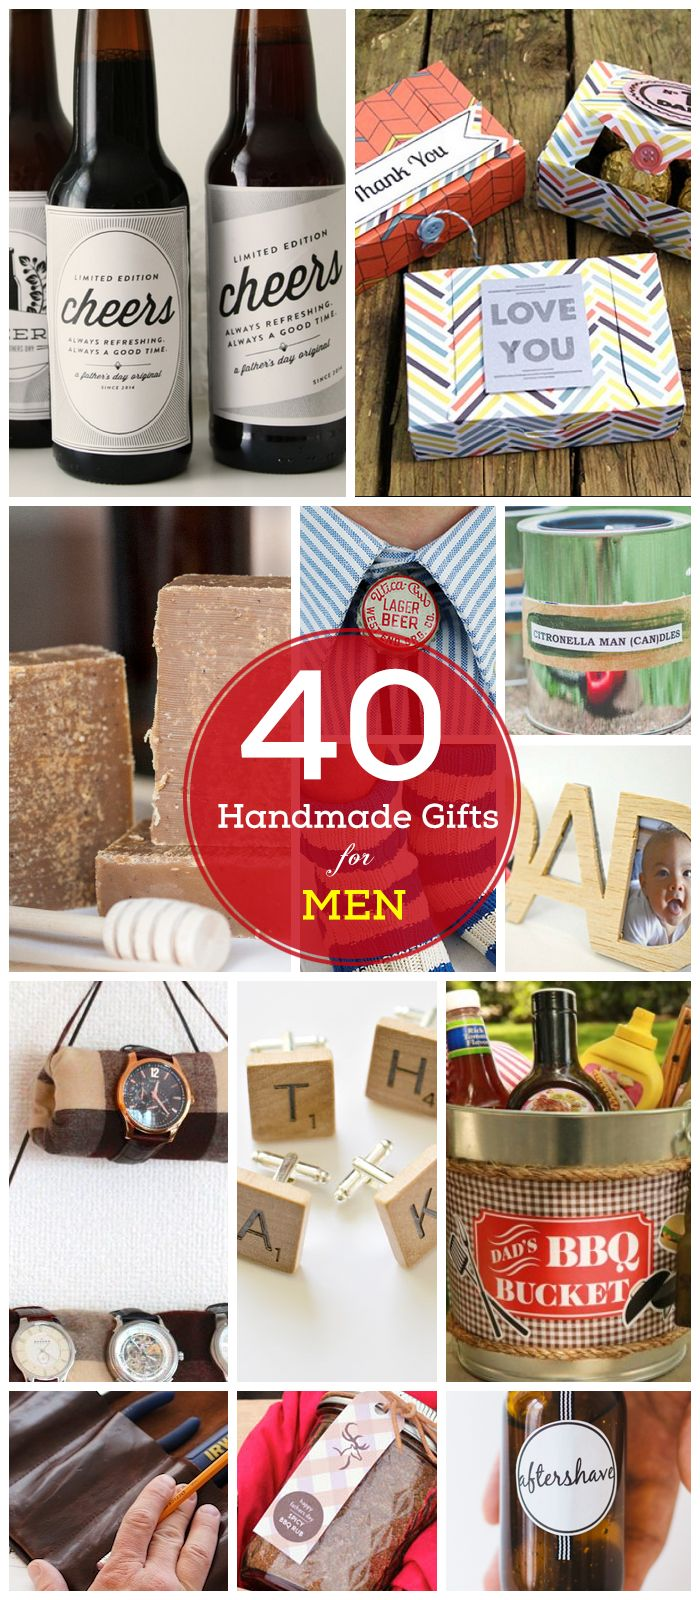 Handmade Baskets Diy : Best images about diy gifts d on